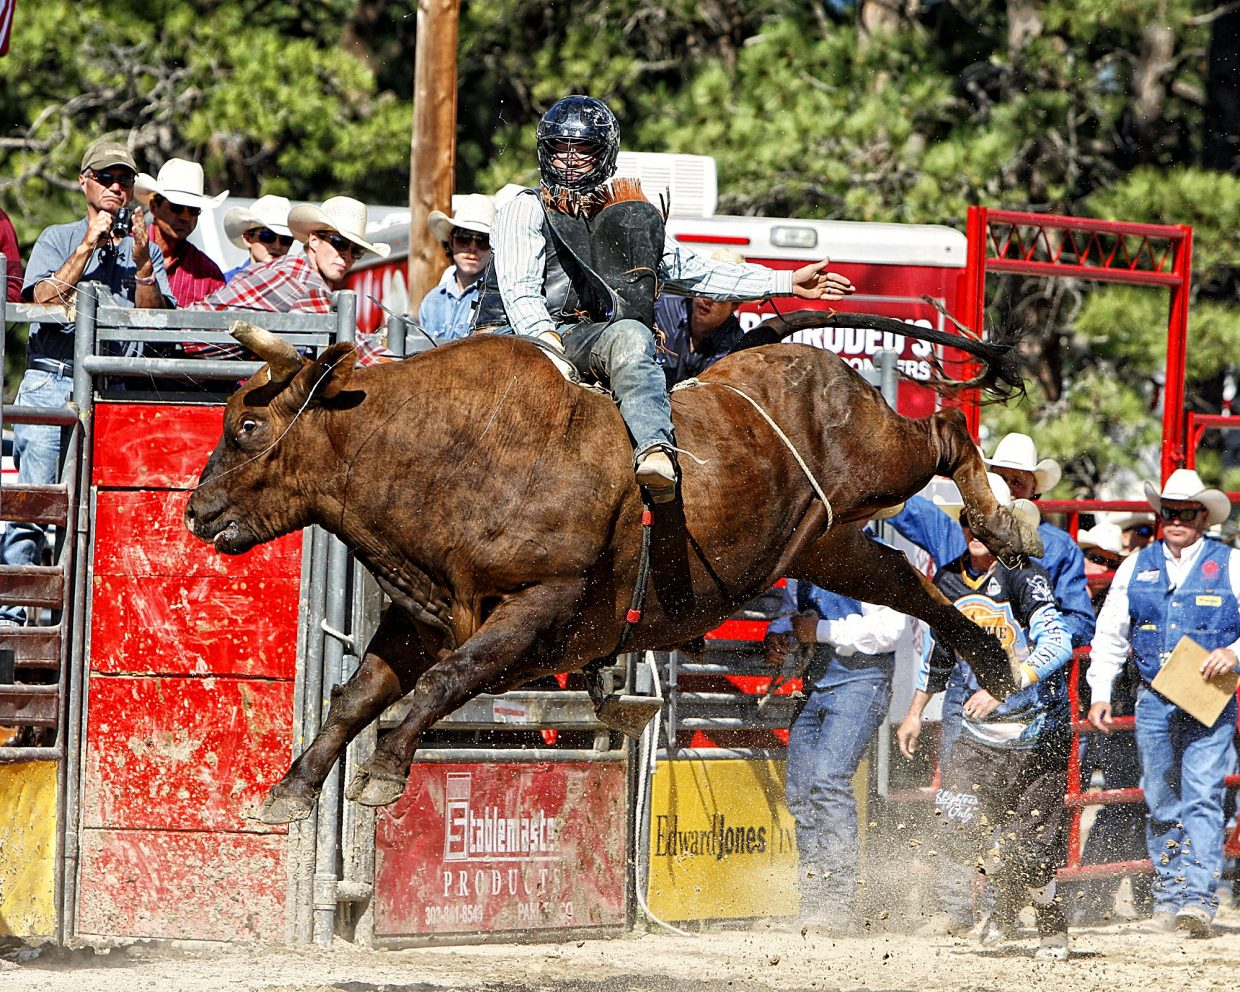 Utah bull rider Tyler Bingham, who had won June 2's Xtreme Bulls competition, had another crowd pleasing ride on June 4 (aboard Summit Pro Rodeo's Red Stuff), but he failed to notch a score as the judges determined he hit the bull with his free hand early in the ride.